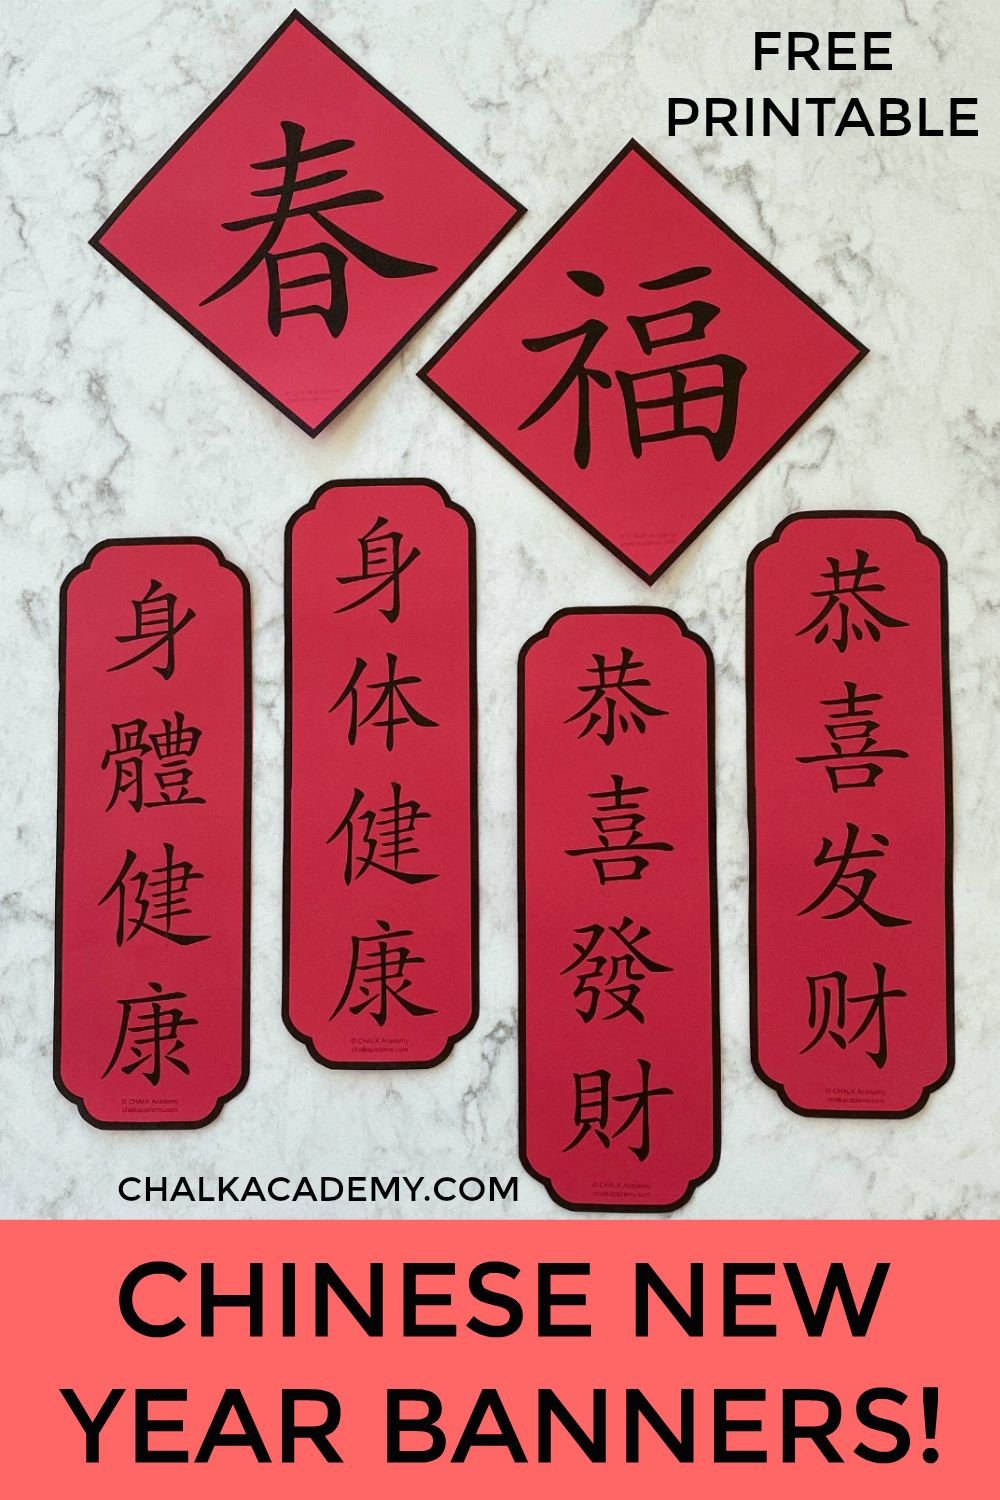 Chinese New Year Banners Simplified And Traditional Chinese In 2020 New Year Banner Chinese New Year Crafts Chinese